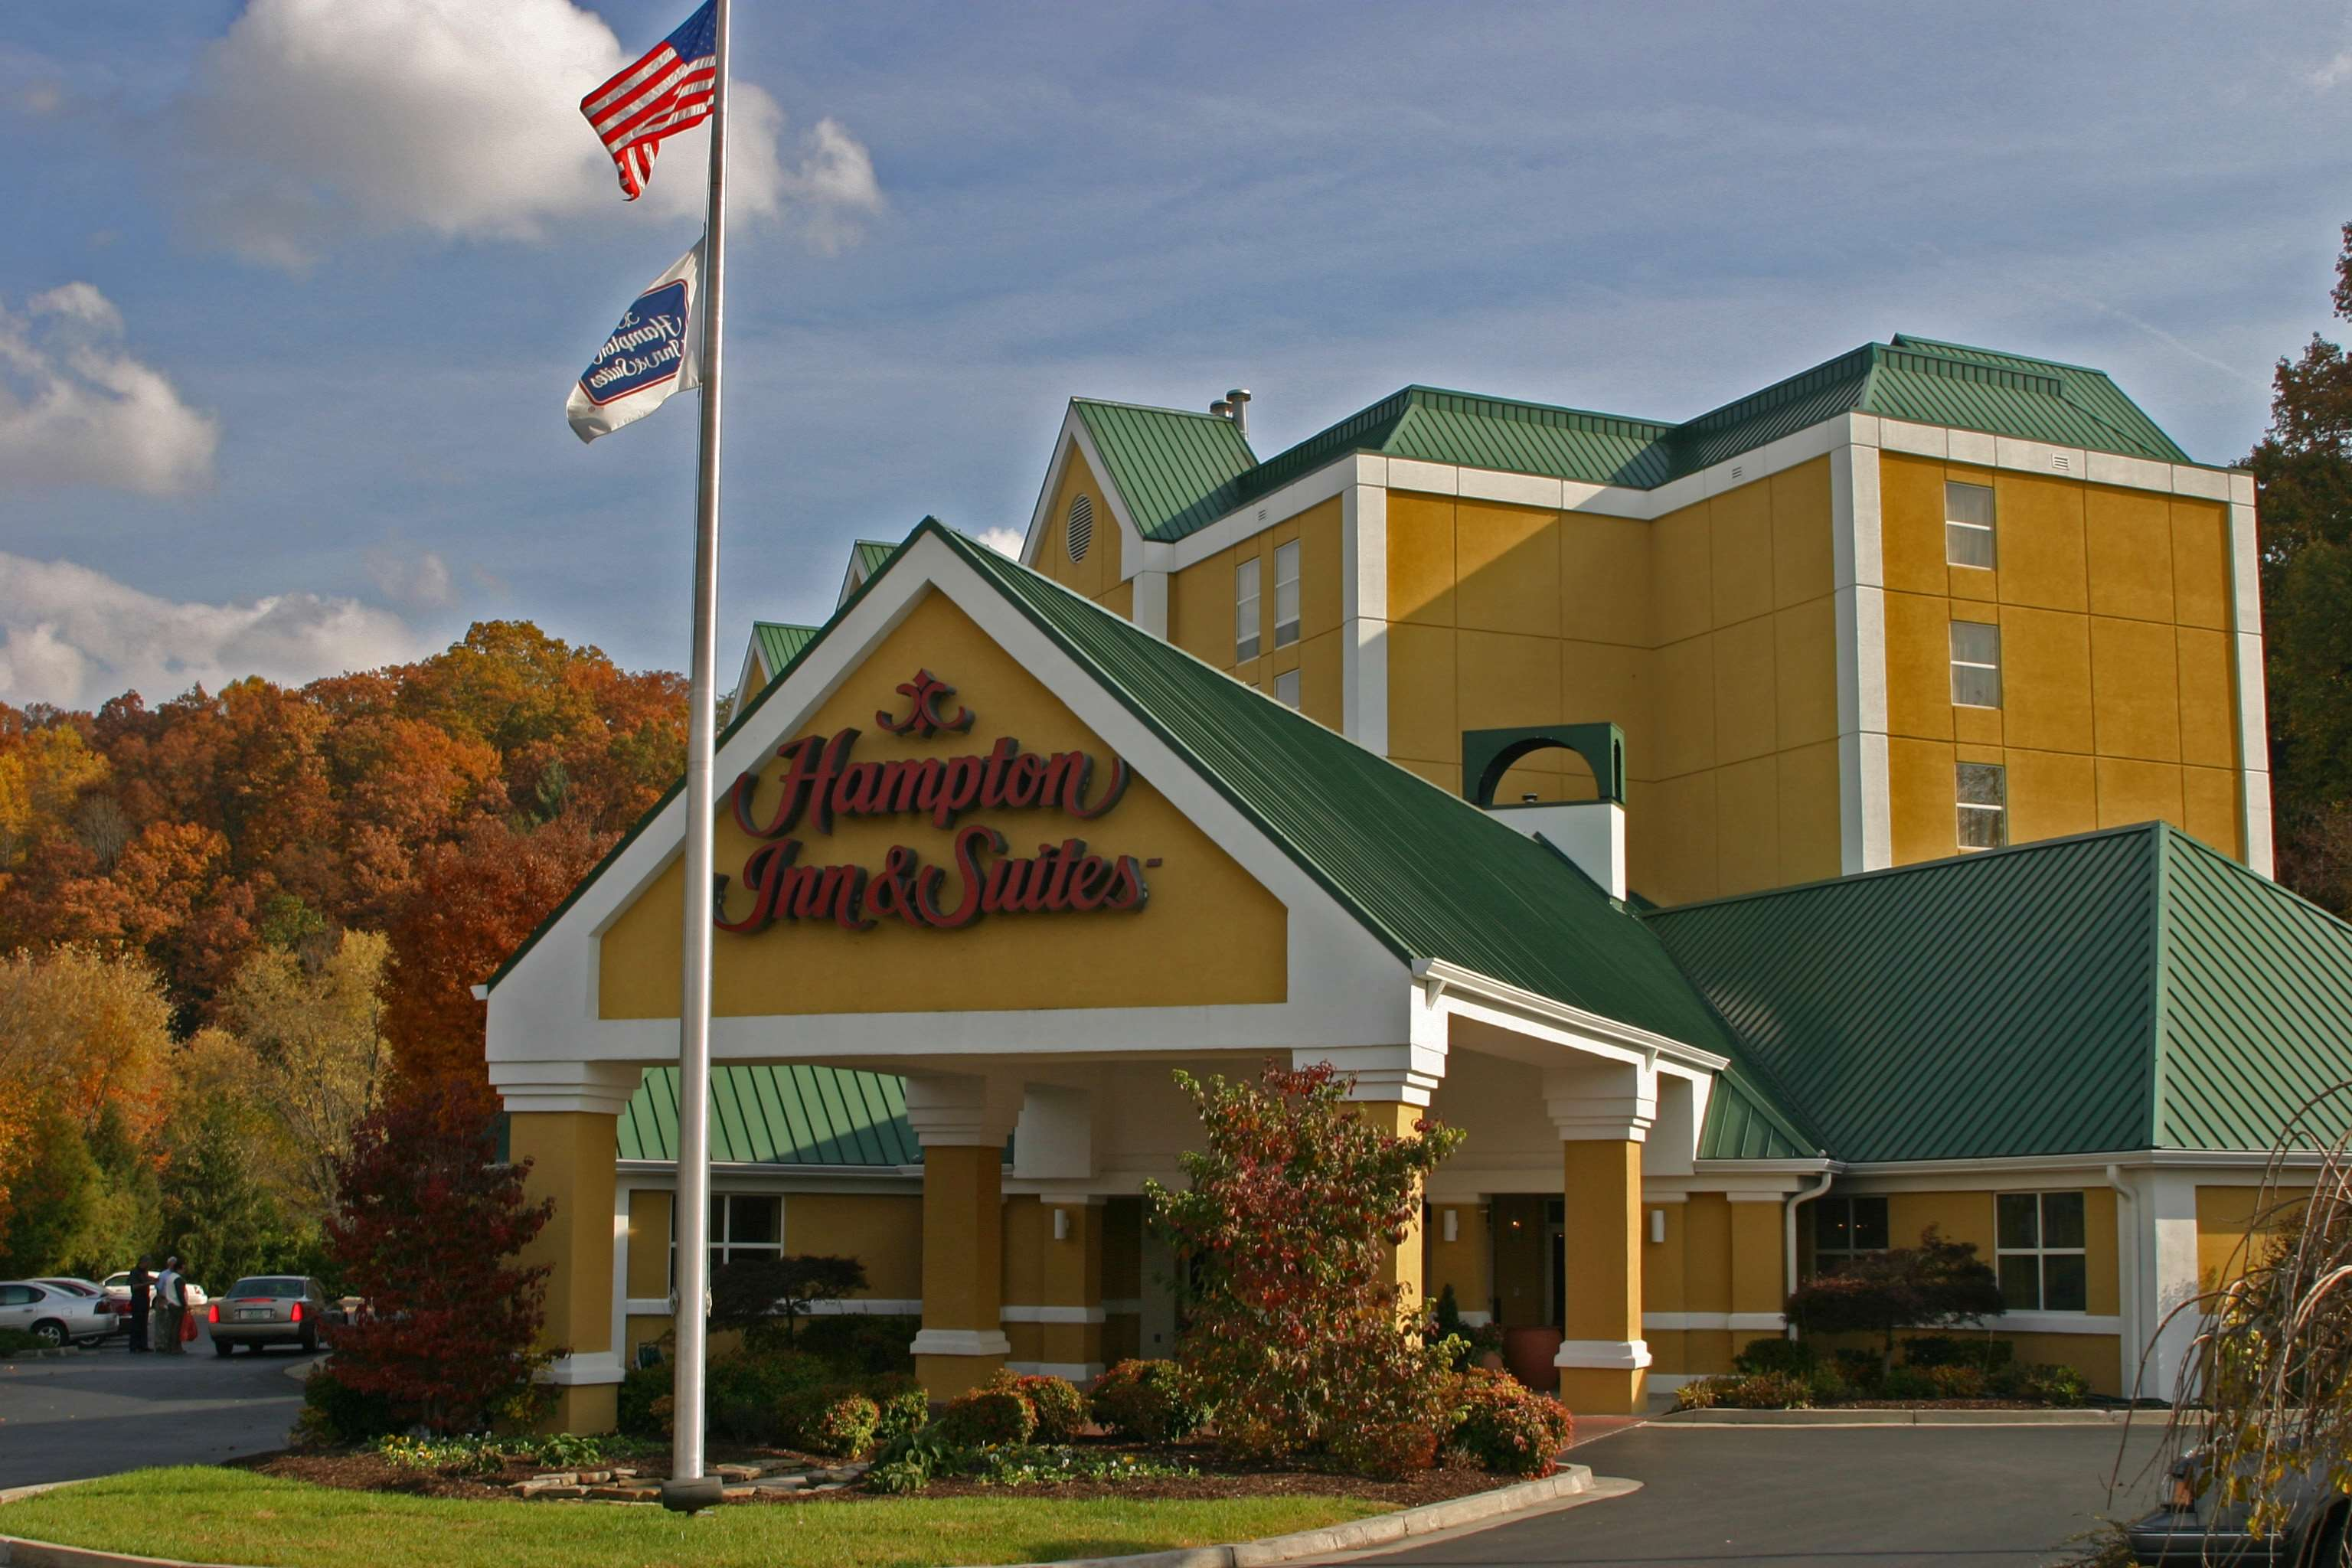 Hampton Inn & Suites Pigeon Forge On The Parkway - Pigeon Forge, TN 37863 - (865)428-1600 | ShowMeLocal.com